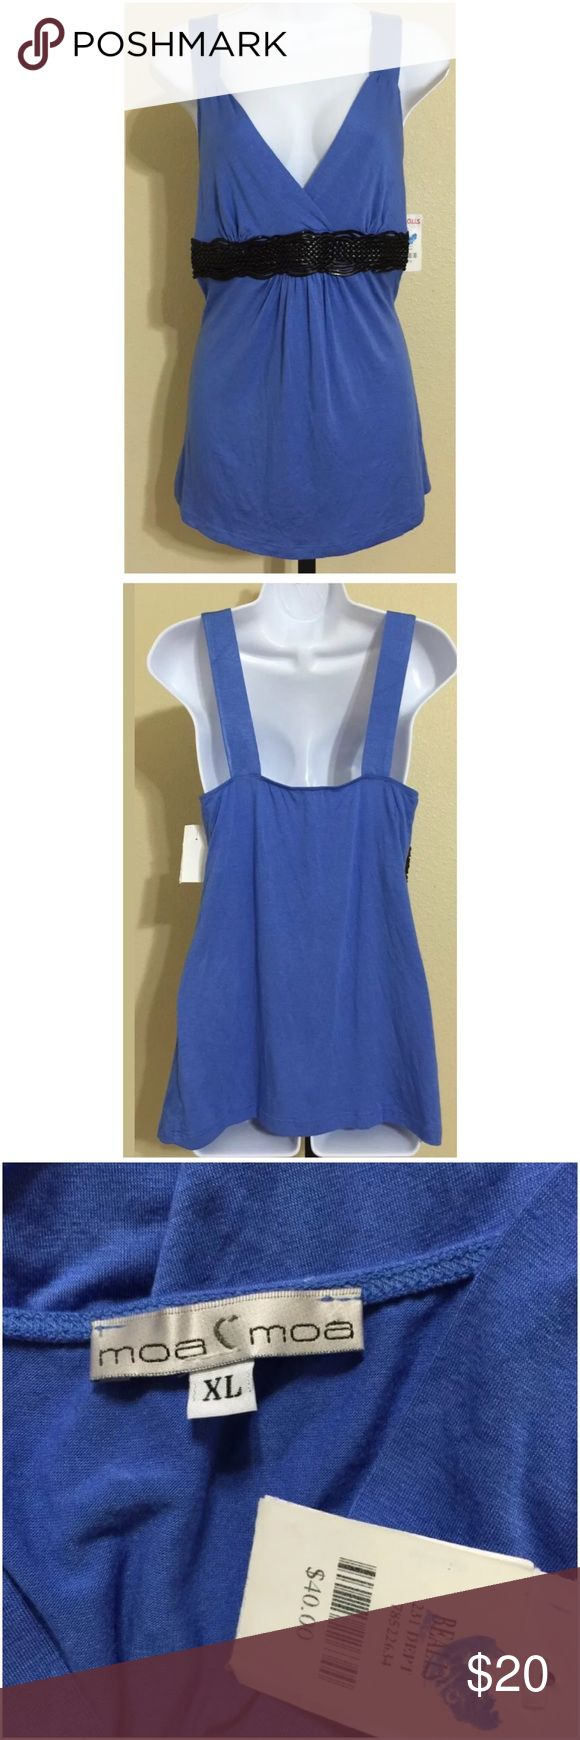 Moa Moa Top Size XL Moa Moa Women's Blouse Size XL Blue Color Black Faux Leather Braided Band Under Bust V Neck Hand Wash 95% Rayon 5% Spandex Armpit to Armpit Approx. 16 Inches Length From Top Of Strap Approx. 26 Inches Shoulder Approx. 15 Inches MSRP $ 40.00 New With Tag Moa Moa Tops Tank Tops